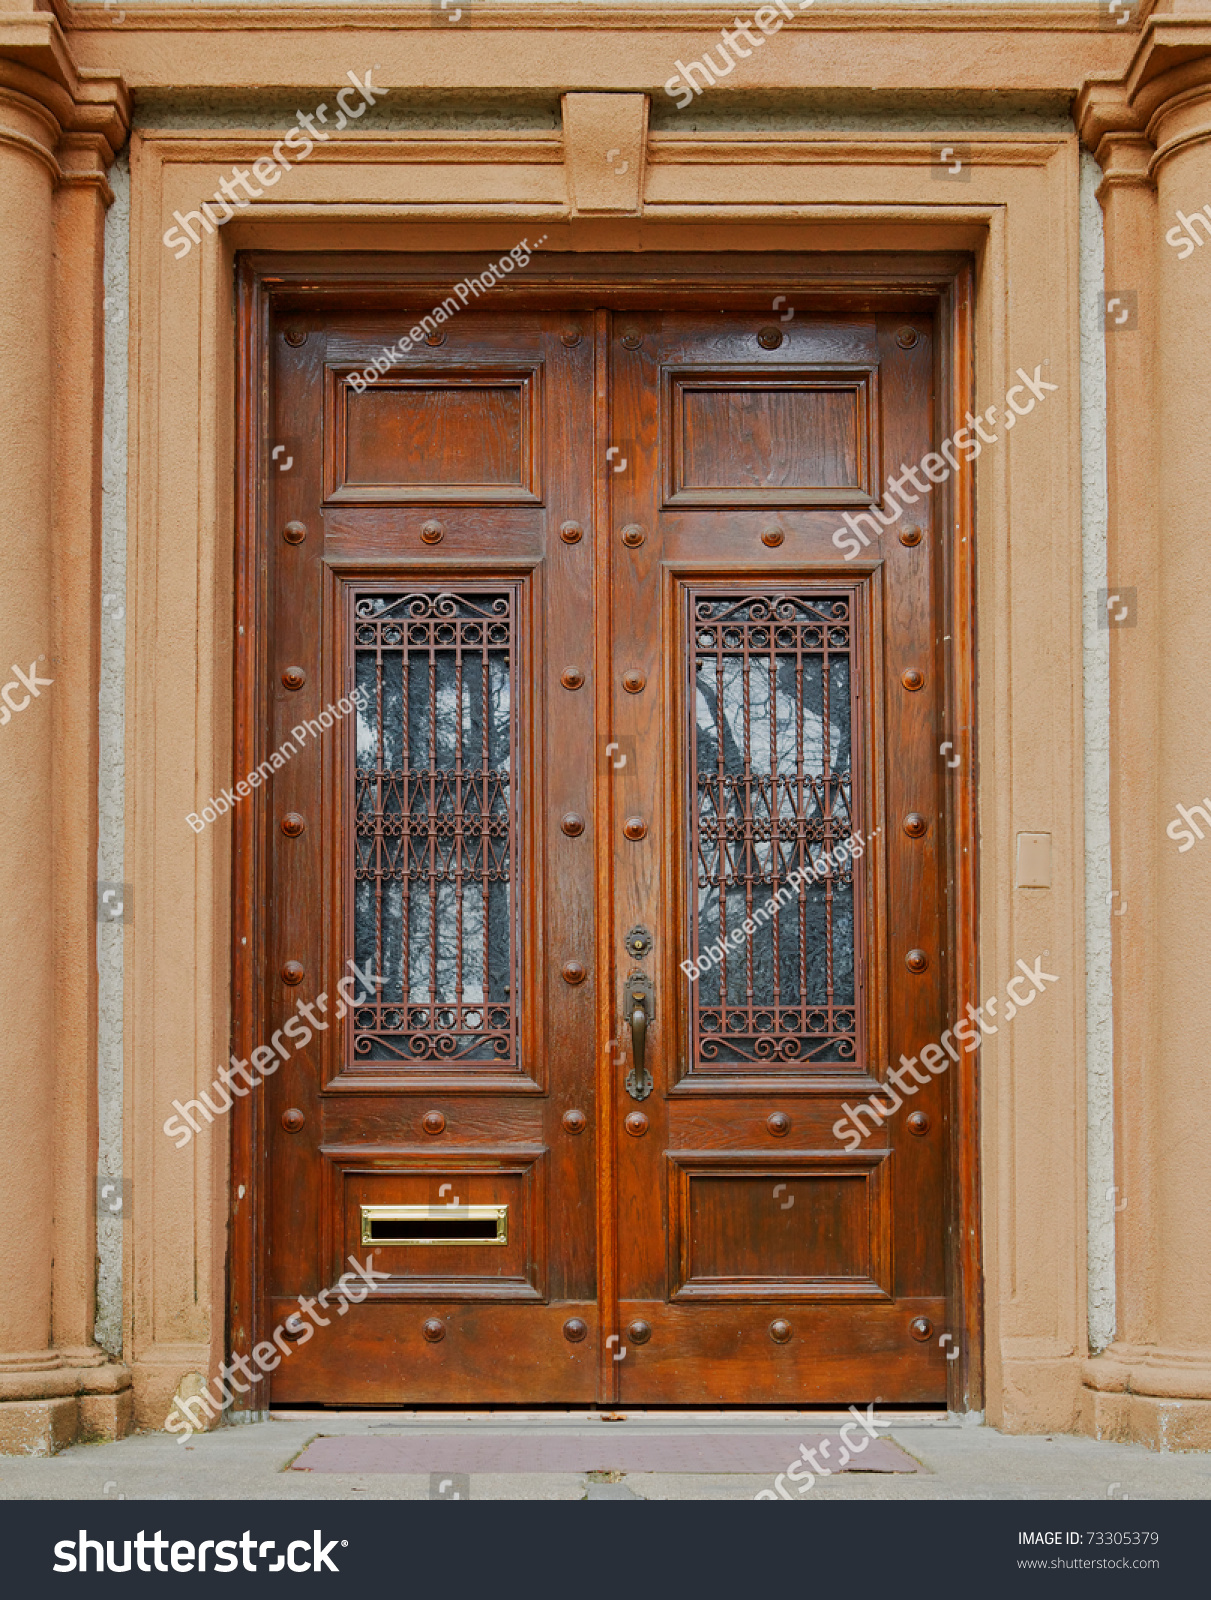 1600 #753F20 Stock Photo Ornate Stained Wood Doors With Wrought Iron Grating Over  pic Wood Doors With Wrought Iron 40111211